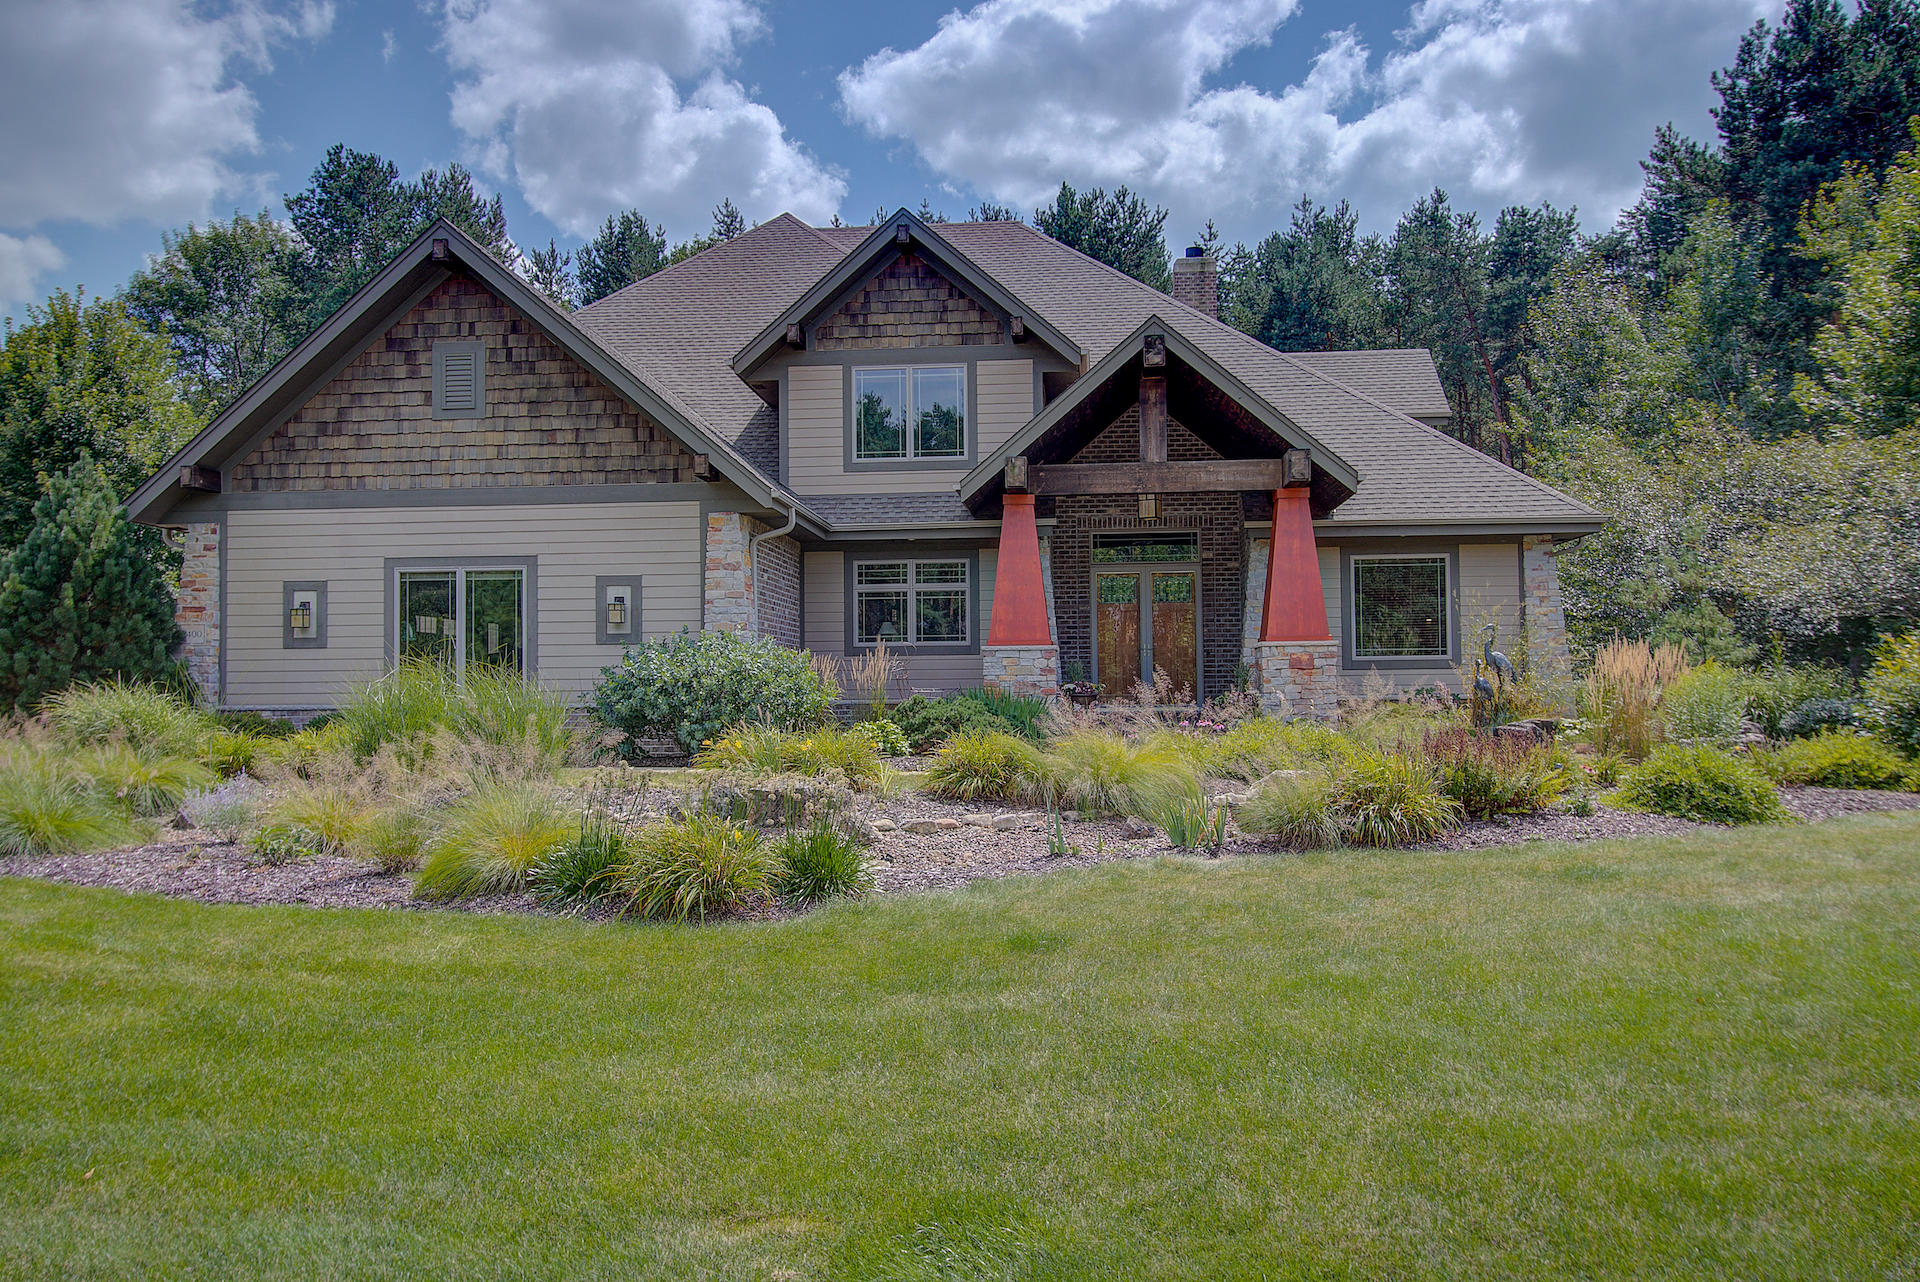 2400 Faire Lakes Pkwy, Delafield, Wisconsin 53029, 4 Bedrooms Bedrooms, 9 Rooms Rooms,3 BathroomsBathrooms,Single-Family,For Sale,Faire Lakes Pkwy,1620319